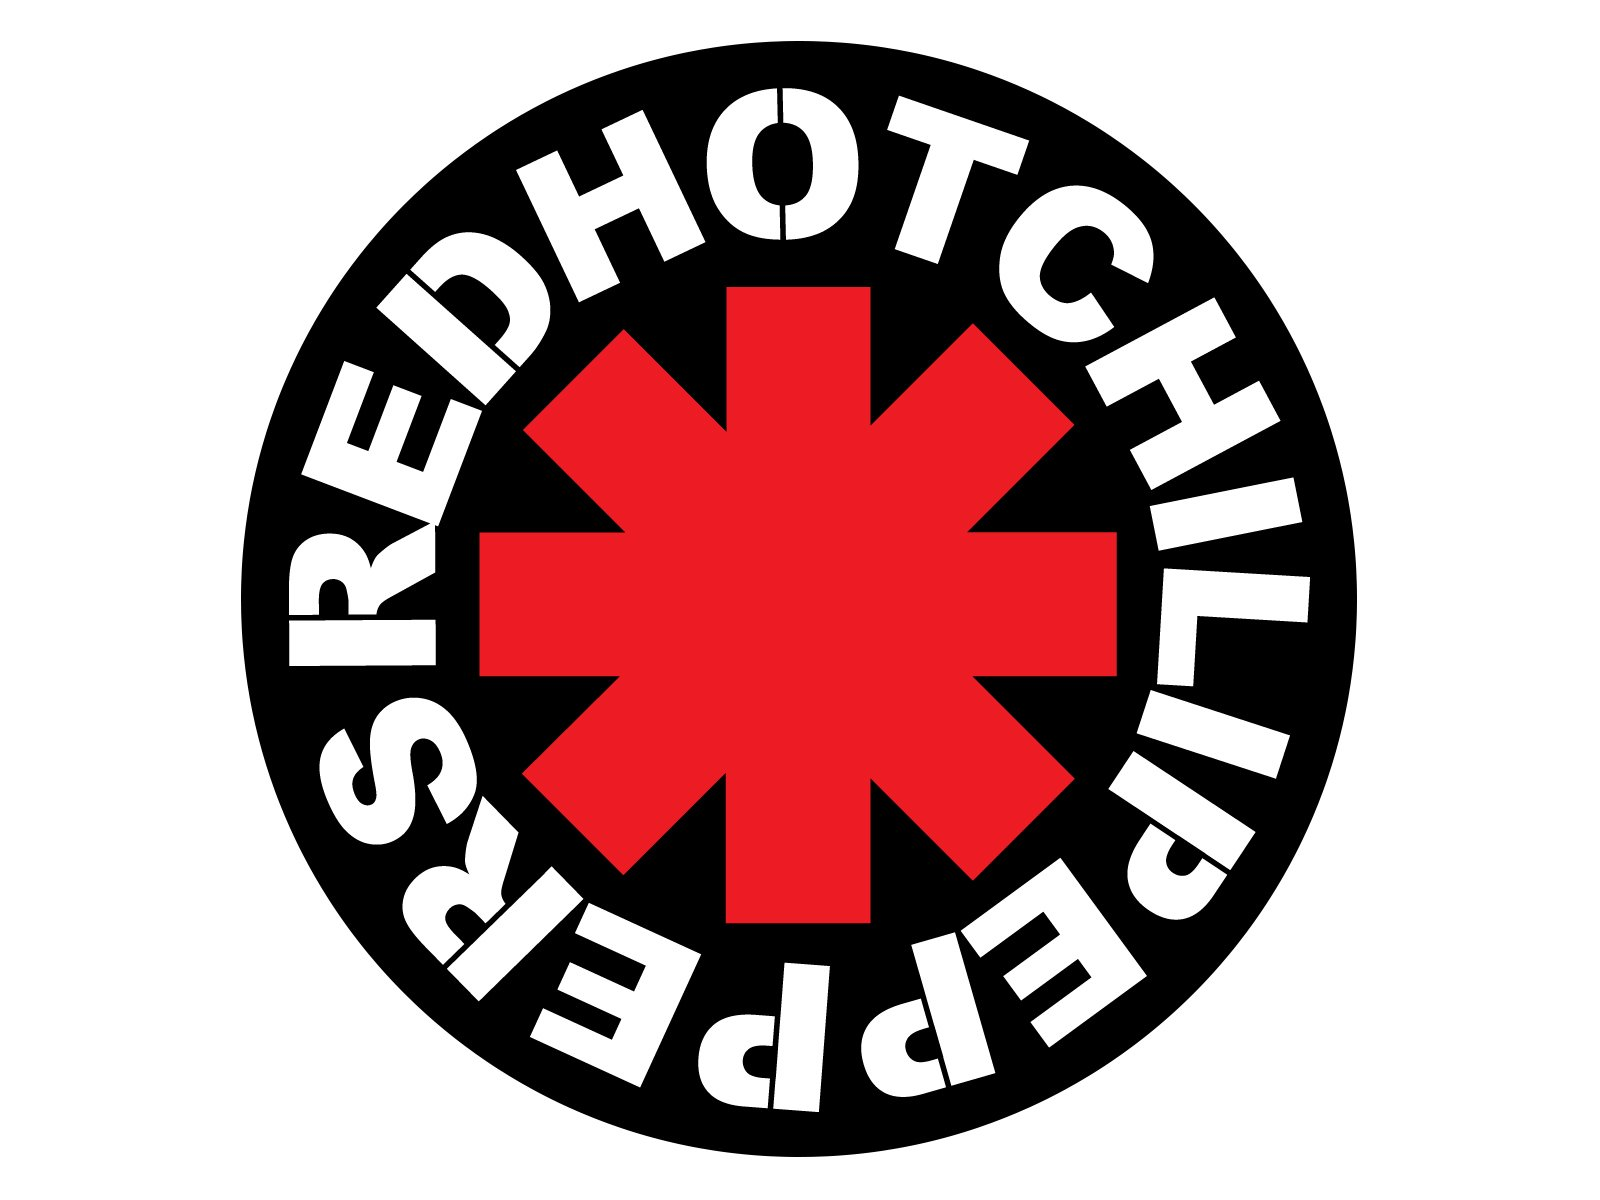 Red Hot Chili Peppers logo : histoire, signification et.